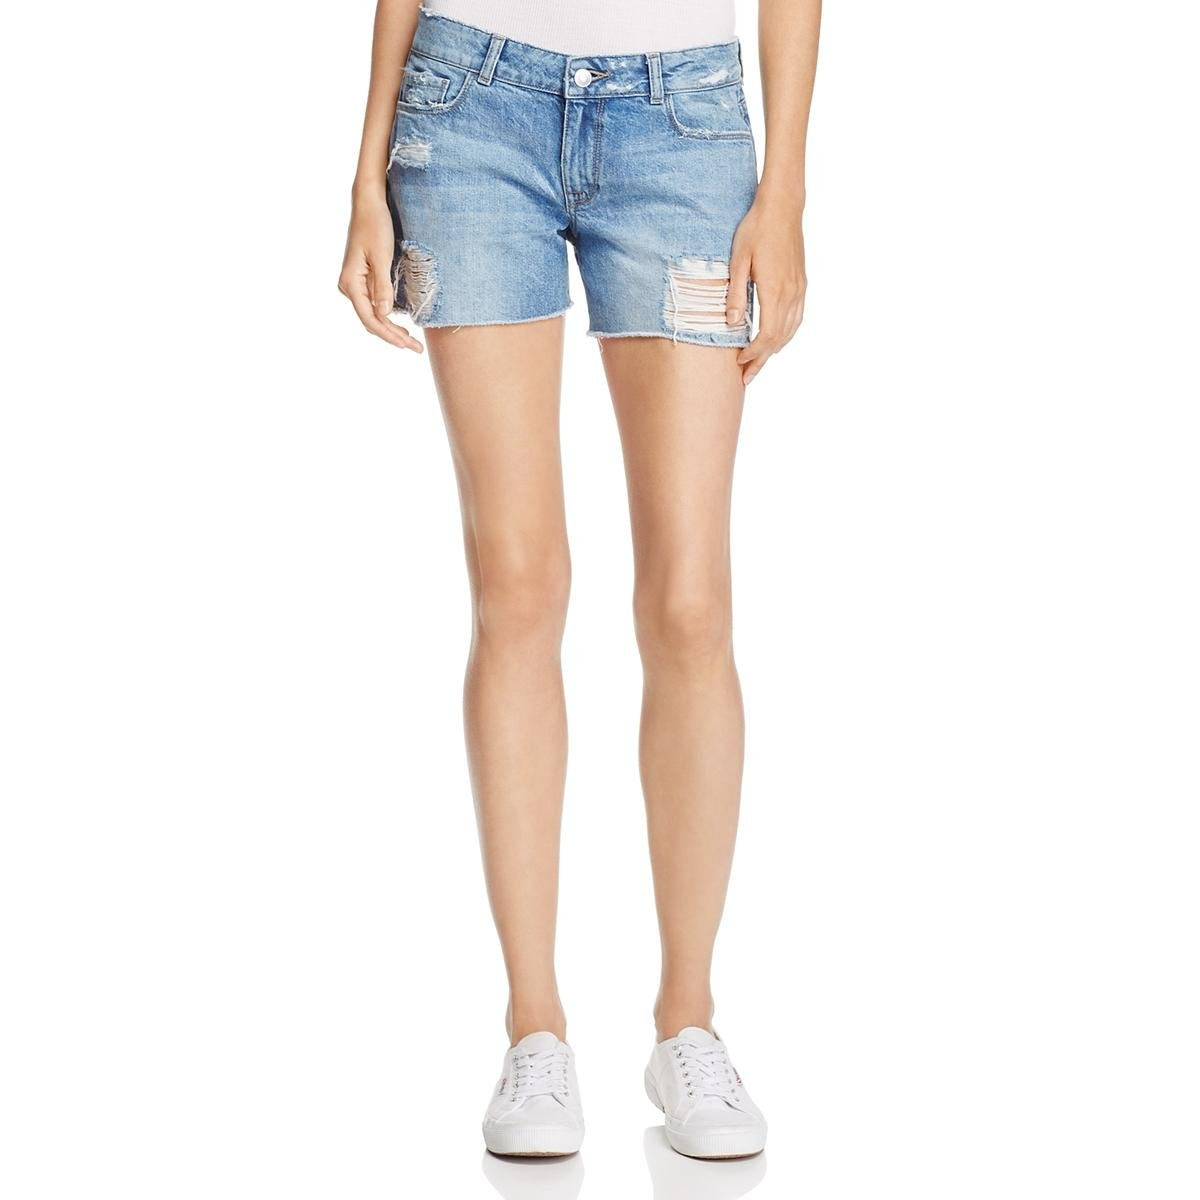 DL1961 Women's Karlie Boyfriend Shorts, Sprawling, 32